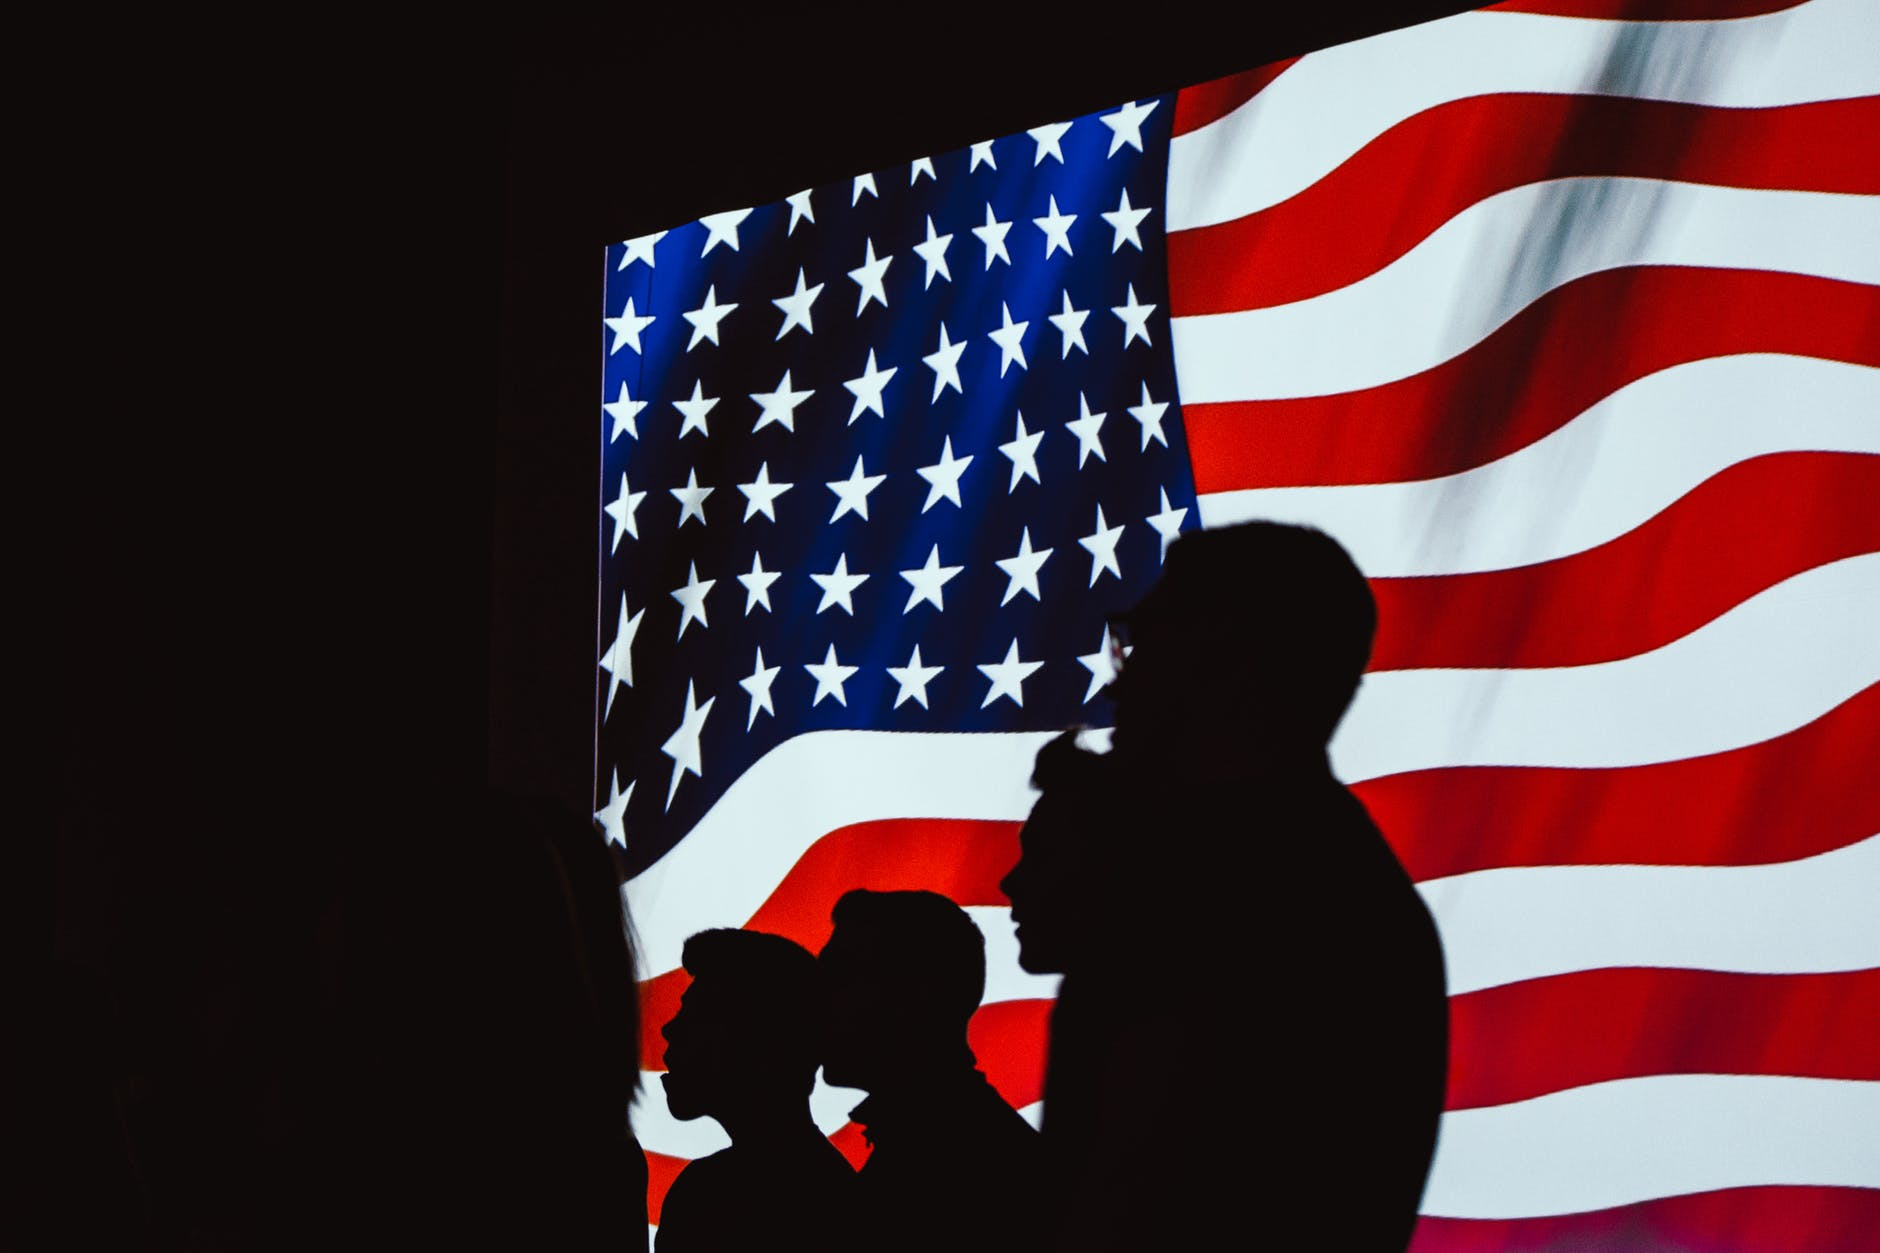 Veterans saluting in front of the american flag.